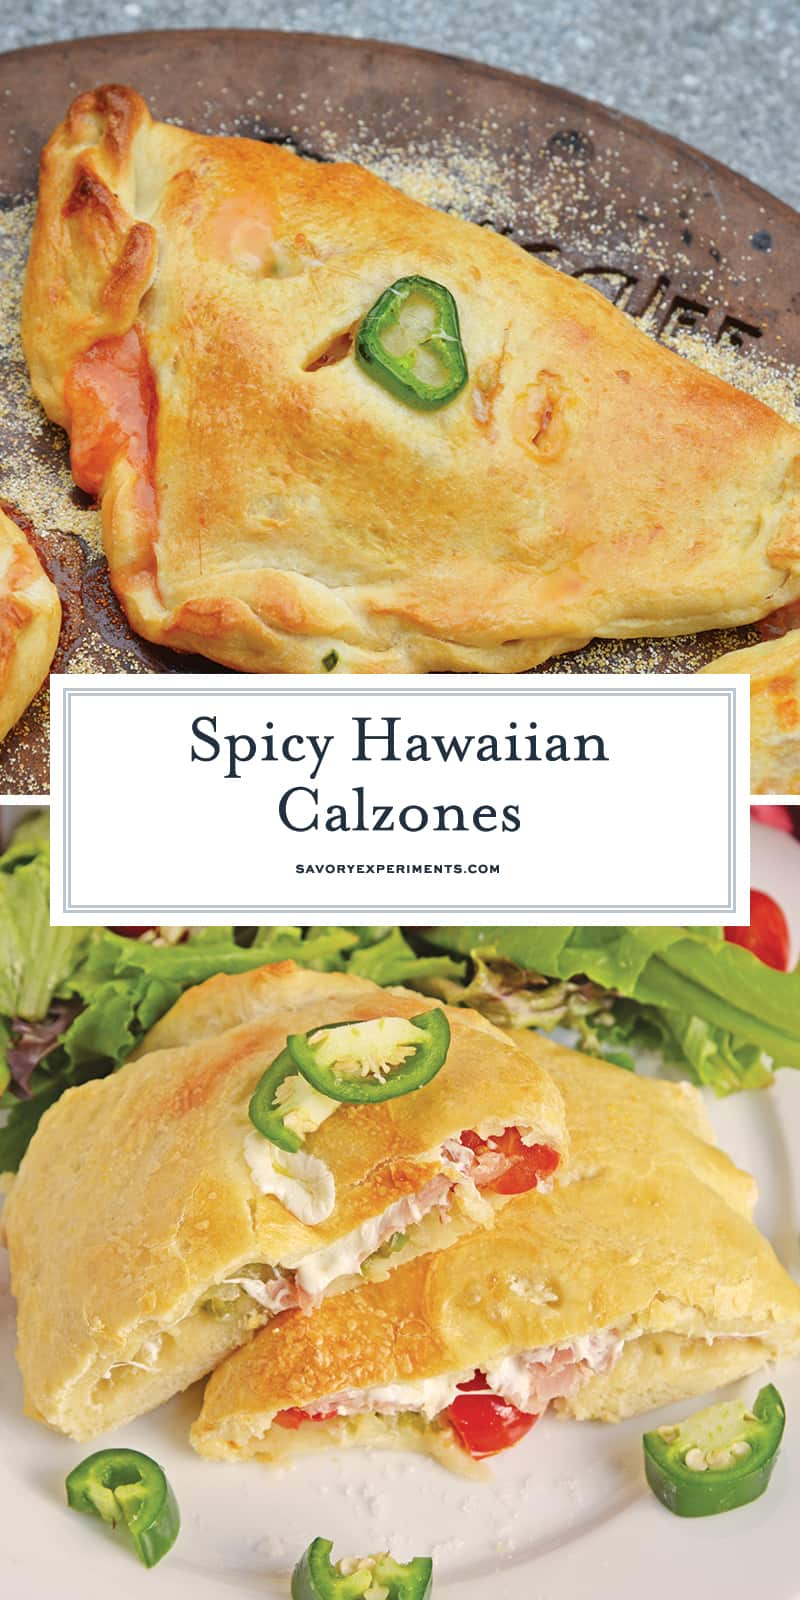 Spicy Hawaiian Calzones have become a favorite lately in this household! This is a easy calzone recipe just like your favorite Hawaiian Pizza with ham, pineapple and jalapenos! #hawaiianpizza #hawaiianfood www.savoryexperiments.com